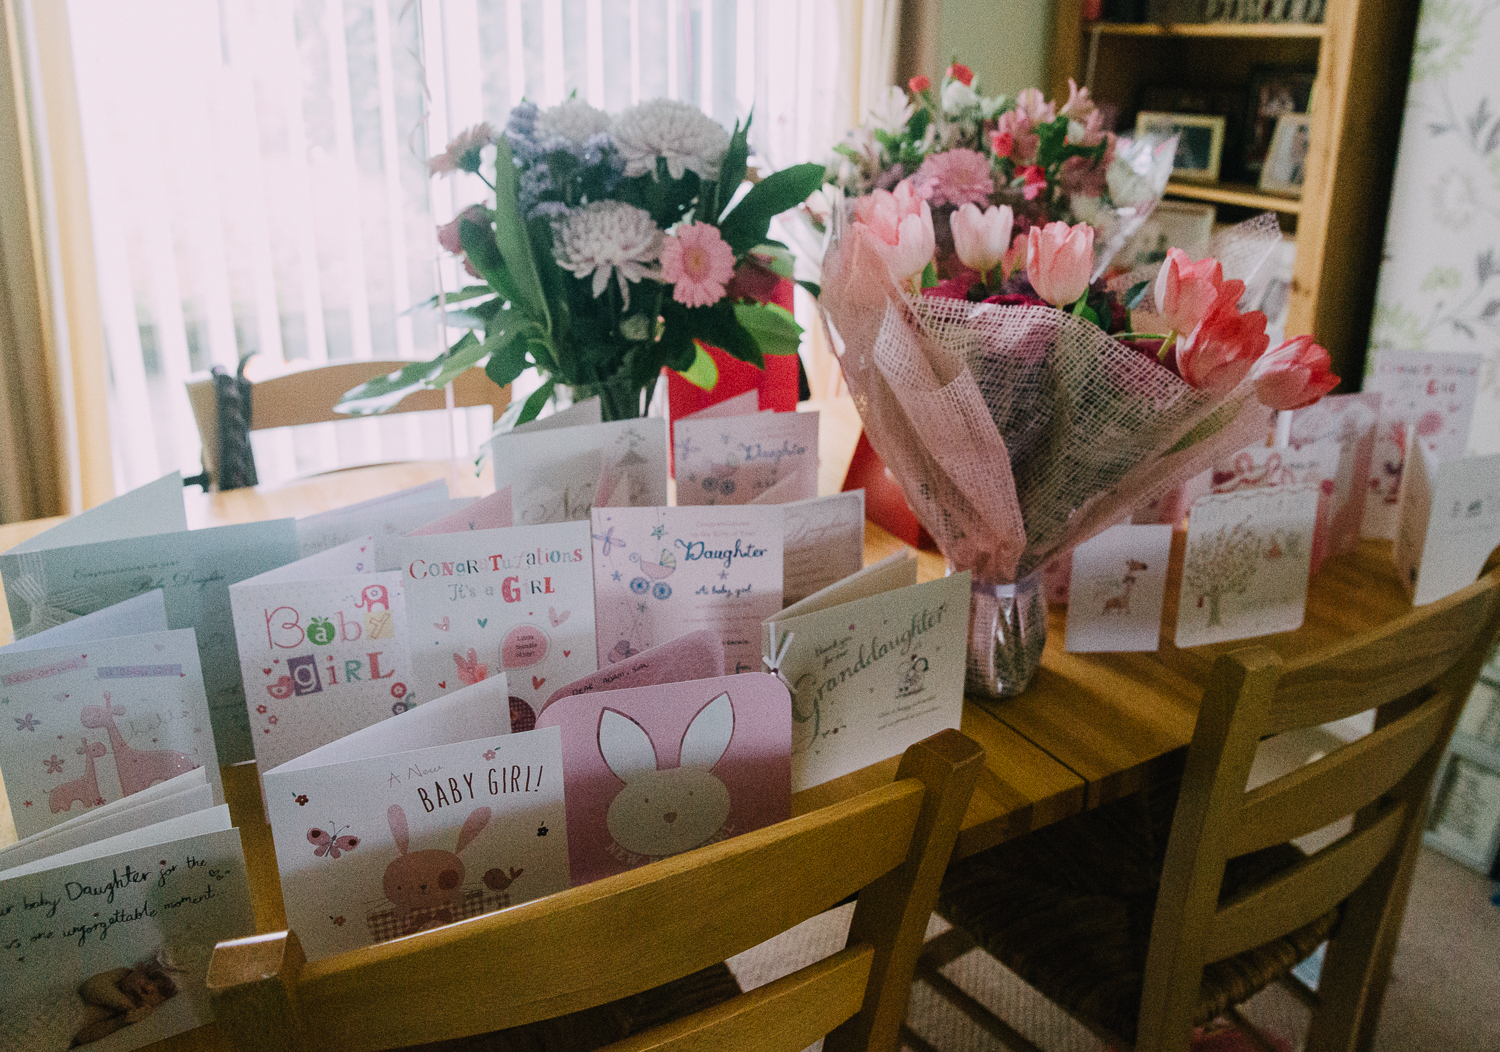 NEW BABY CARDS AND BUNCHES OF FLOWERS